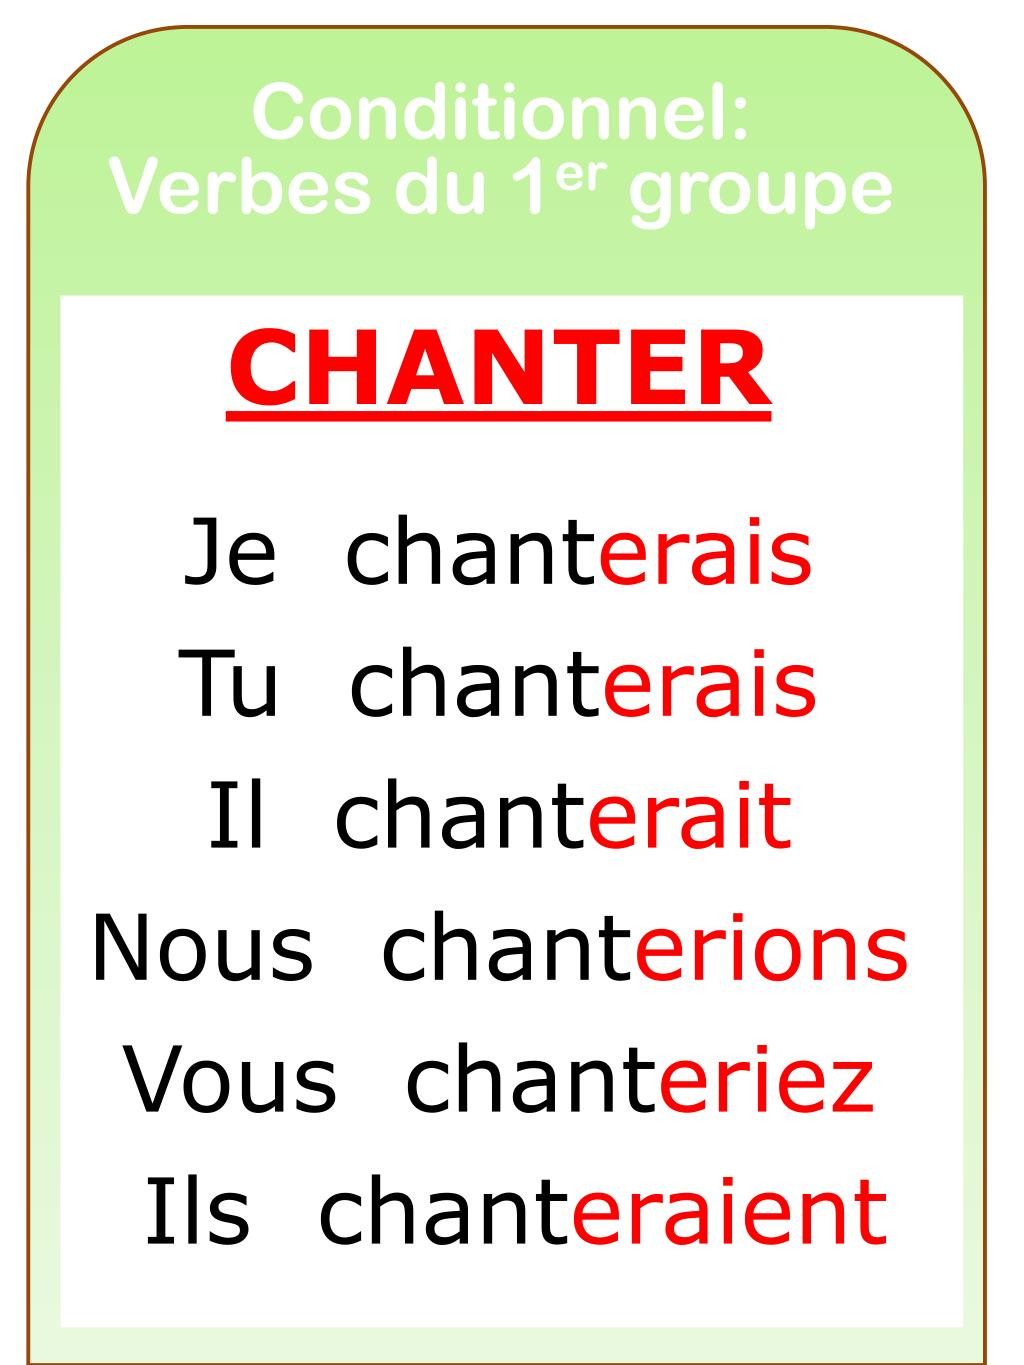 Ppt Conditionnel Verbes Du 1 Er Groupe Powerpoint Presentation Free Download Id 2361990